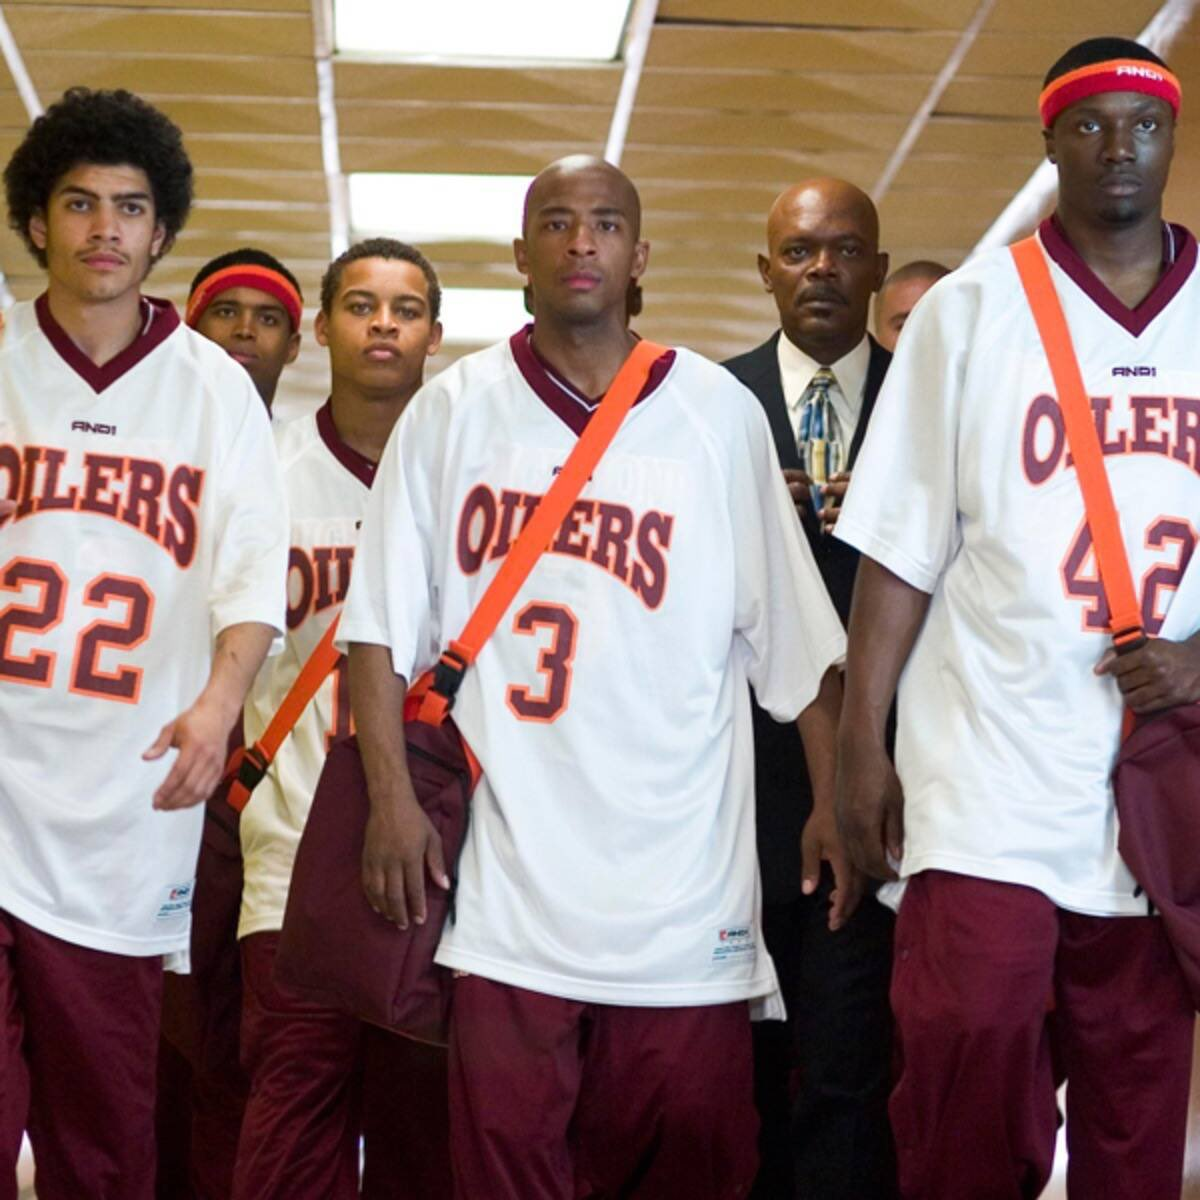 Coach Carter is trending and we gotta give @antwon_tanner his flowers, he been the go-to hooper in tv and film for years now